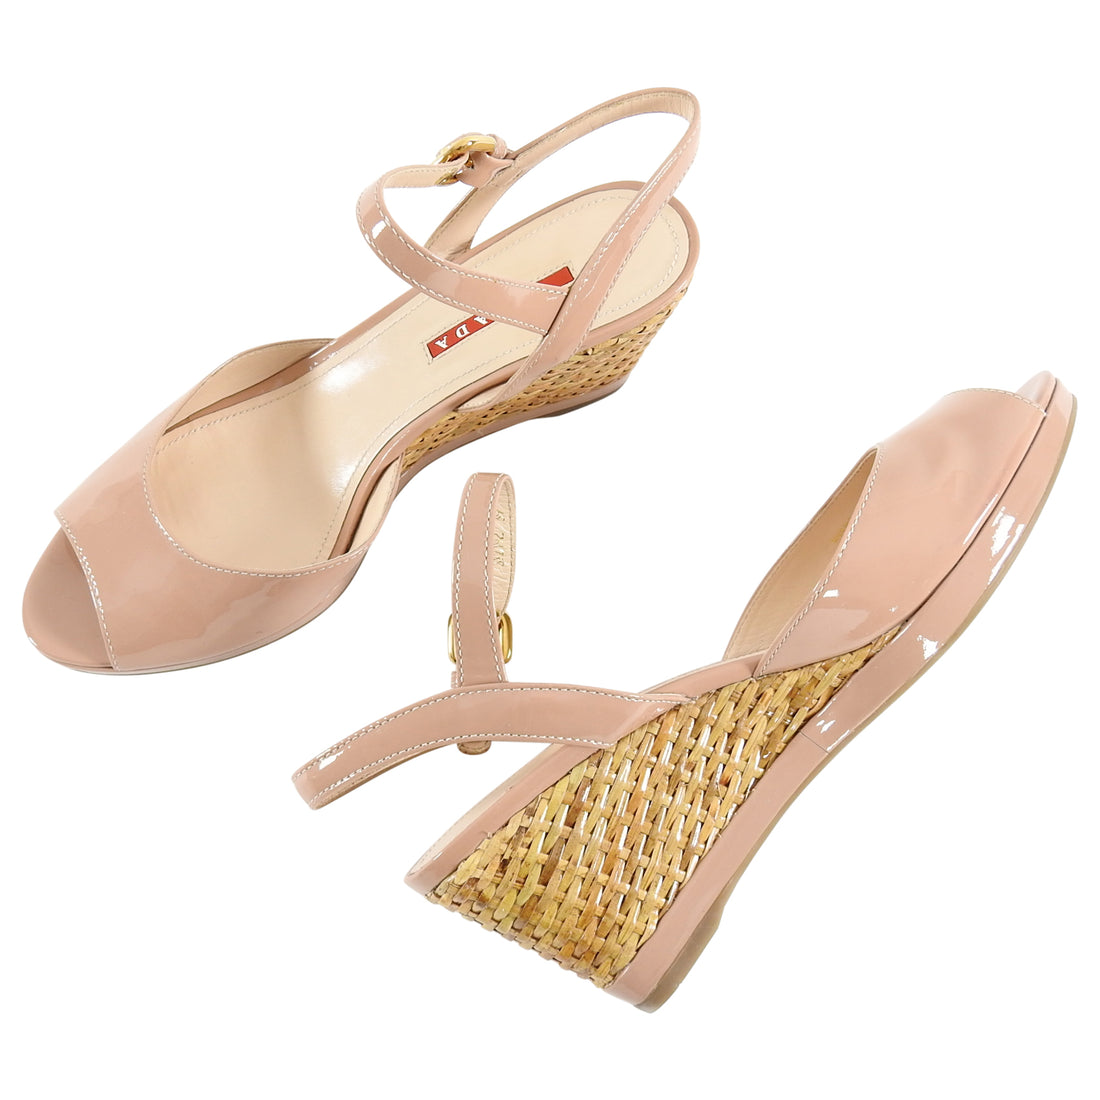 Prada Nude Patent Vernice Leather Woven Wedge Sandal - 39